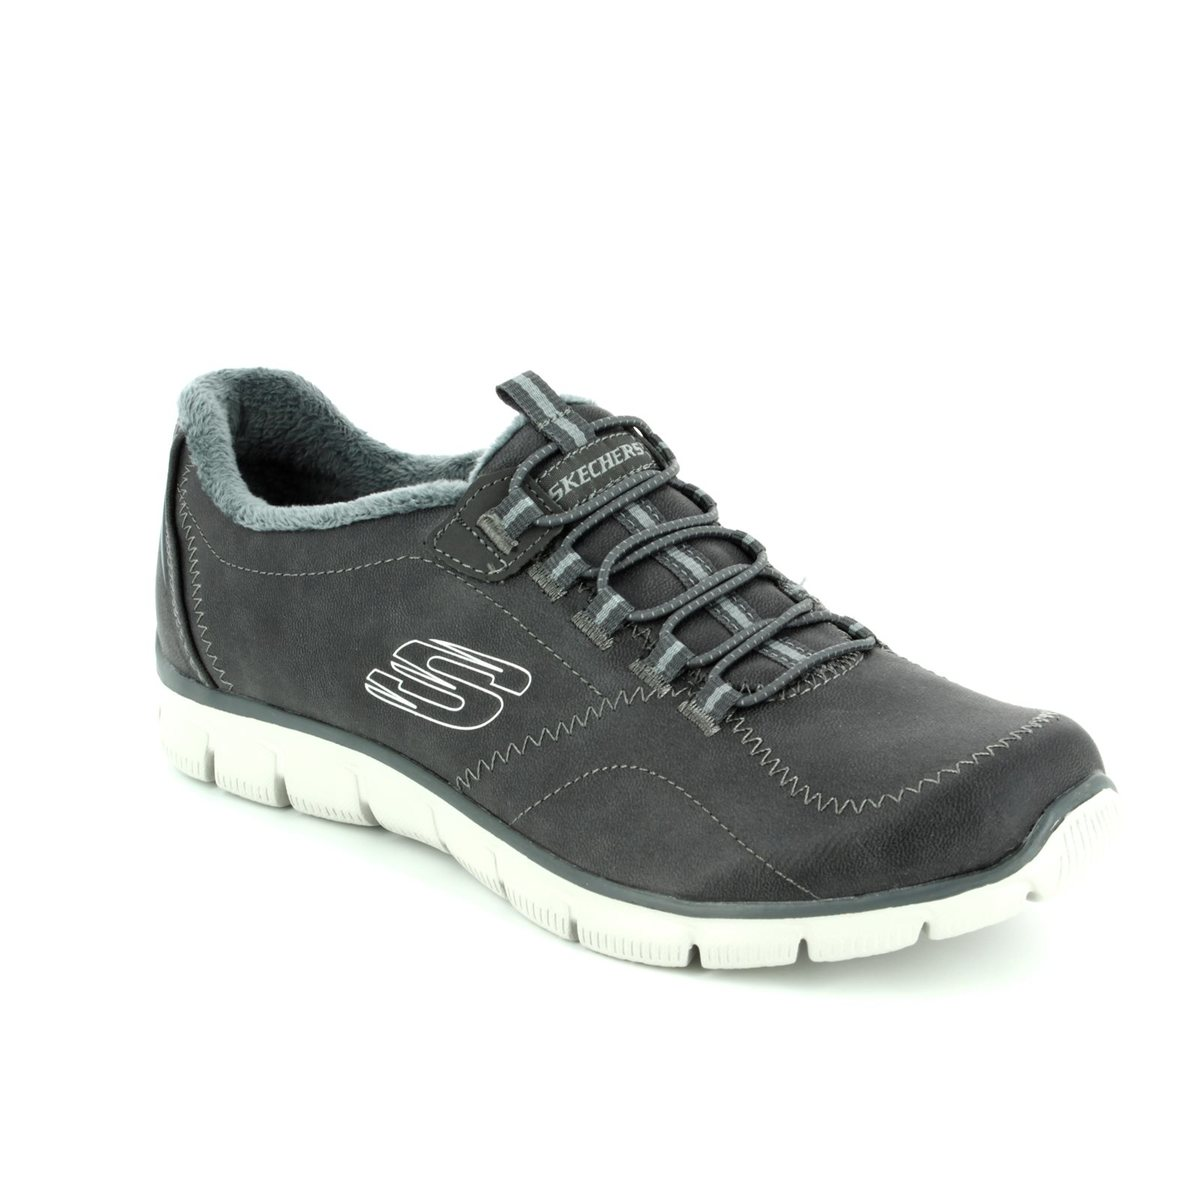 Skechers Trainers - Charcoal - 12394 EMPIRE